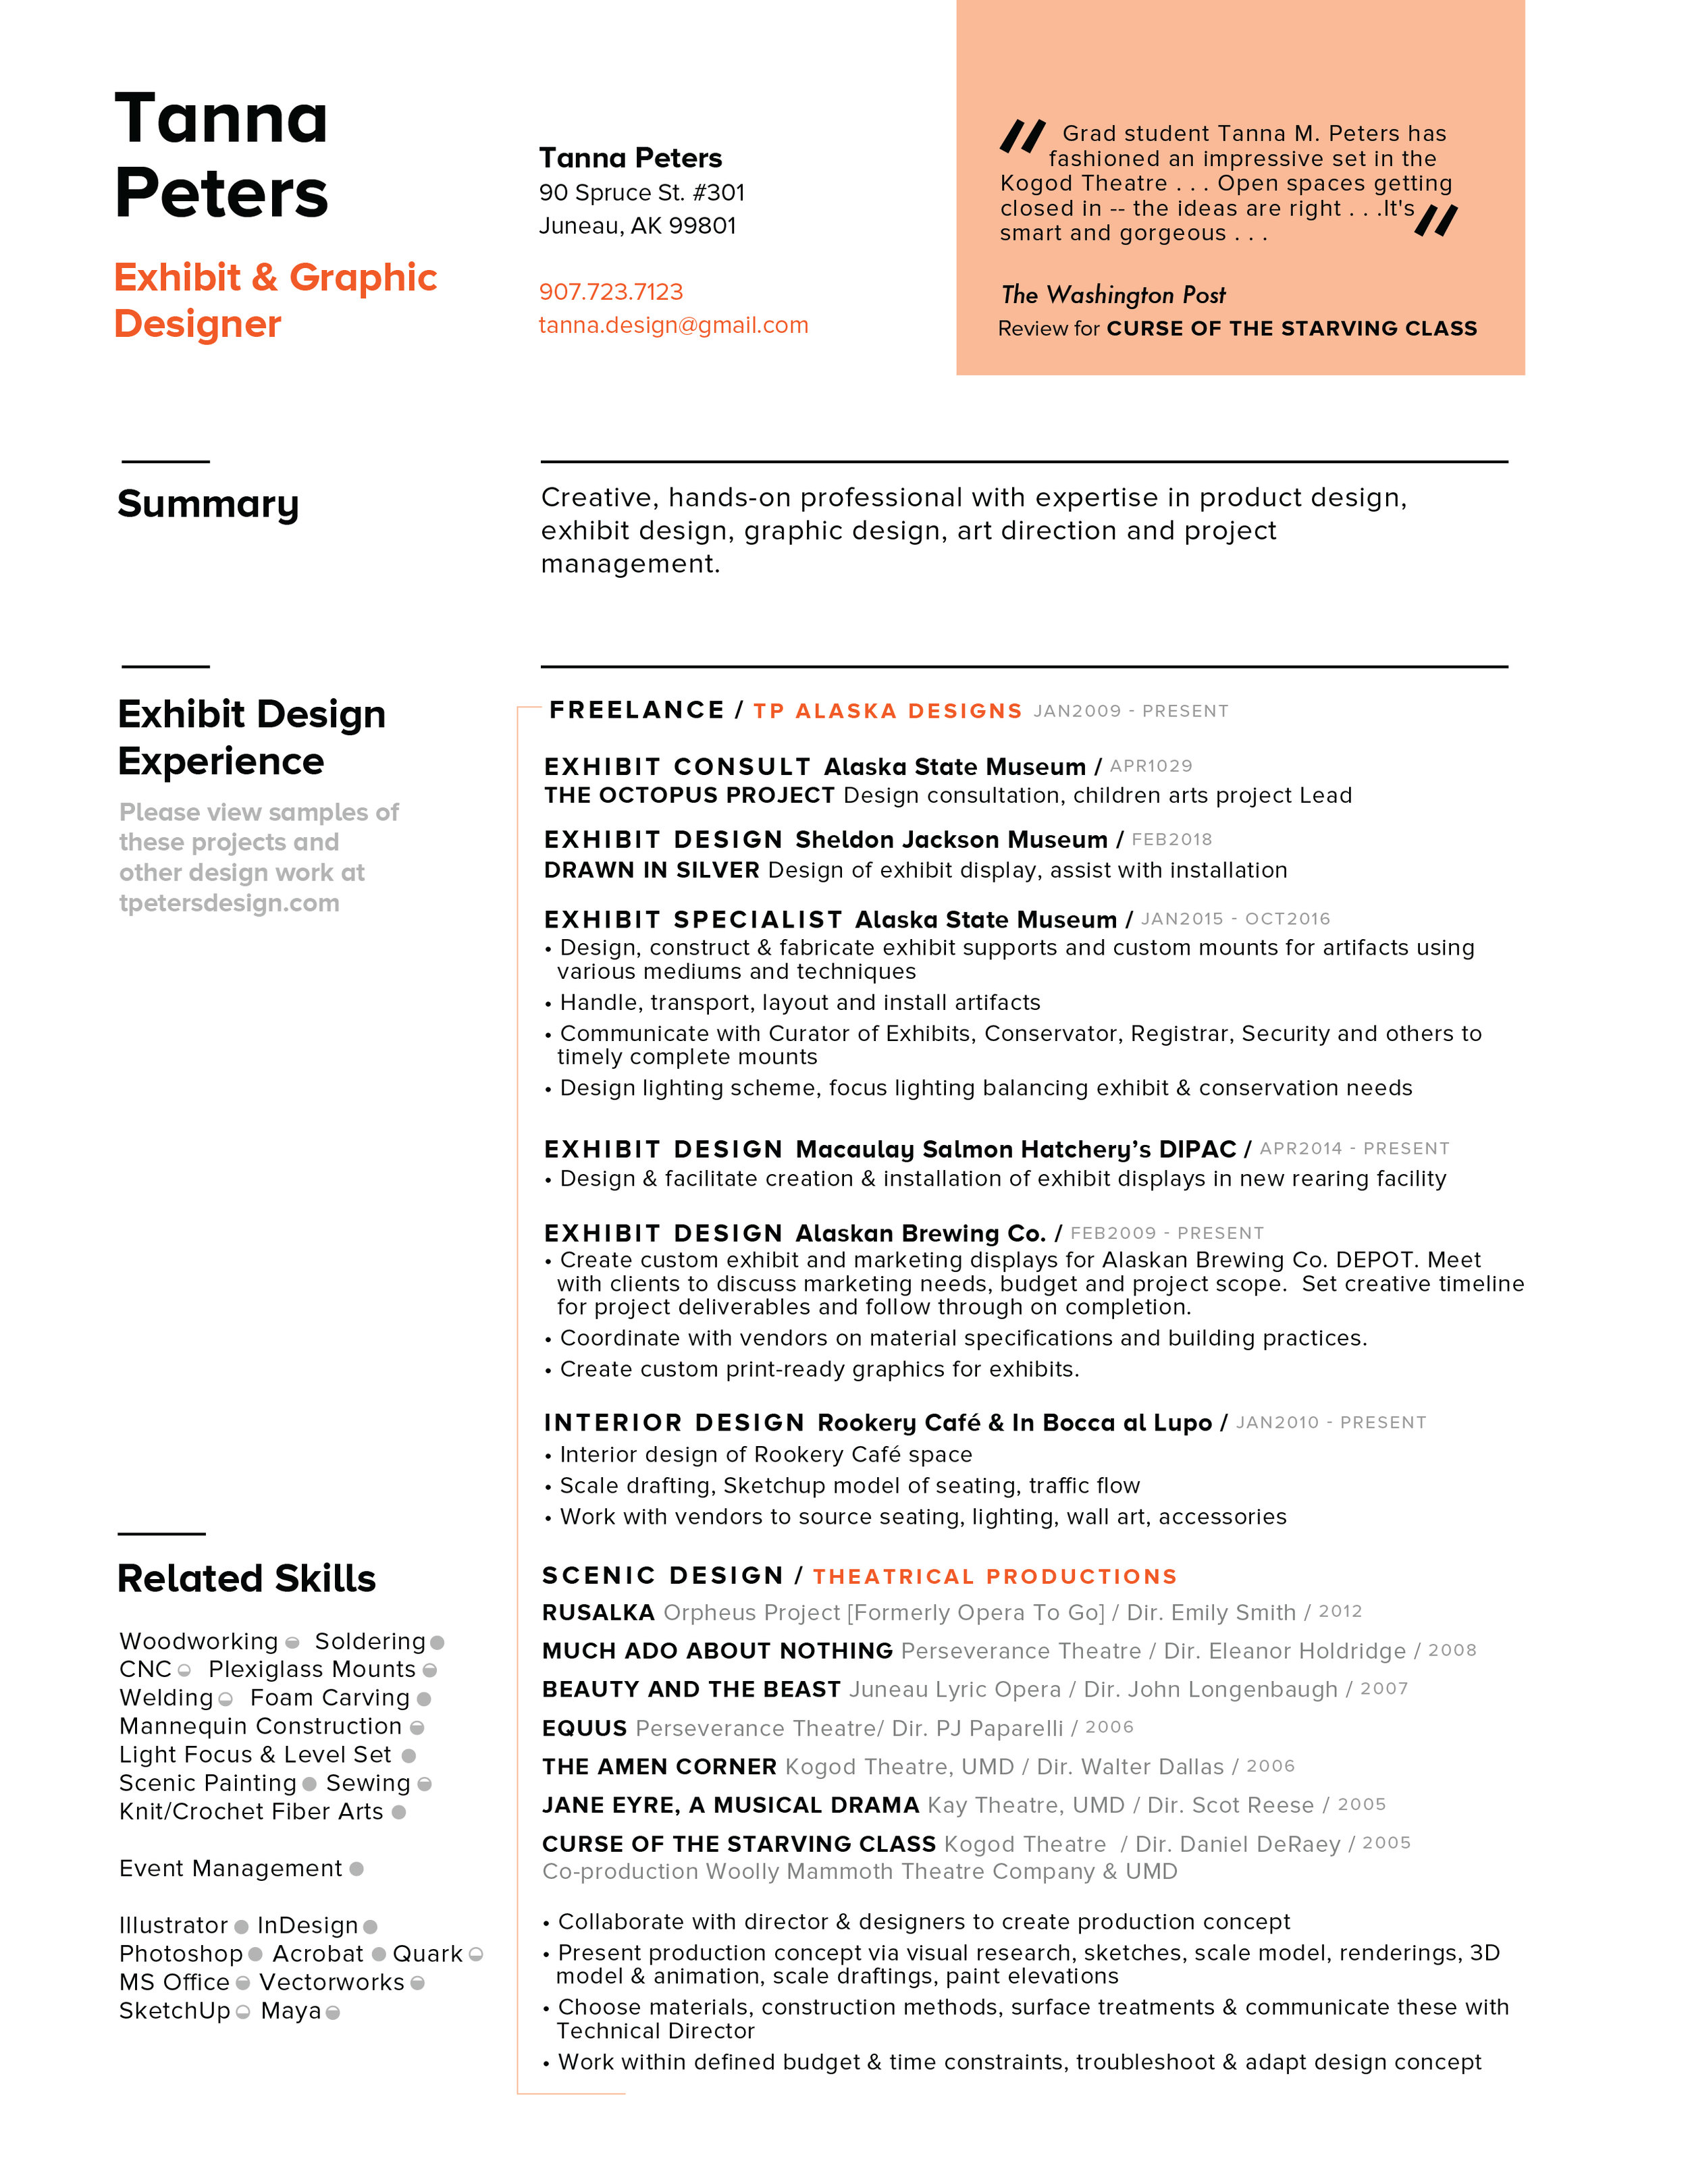 WEB-1-MNH_Tanna-Peters_Resume.png